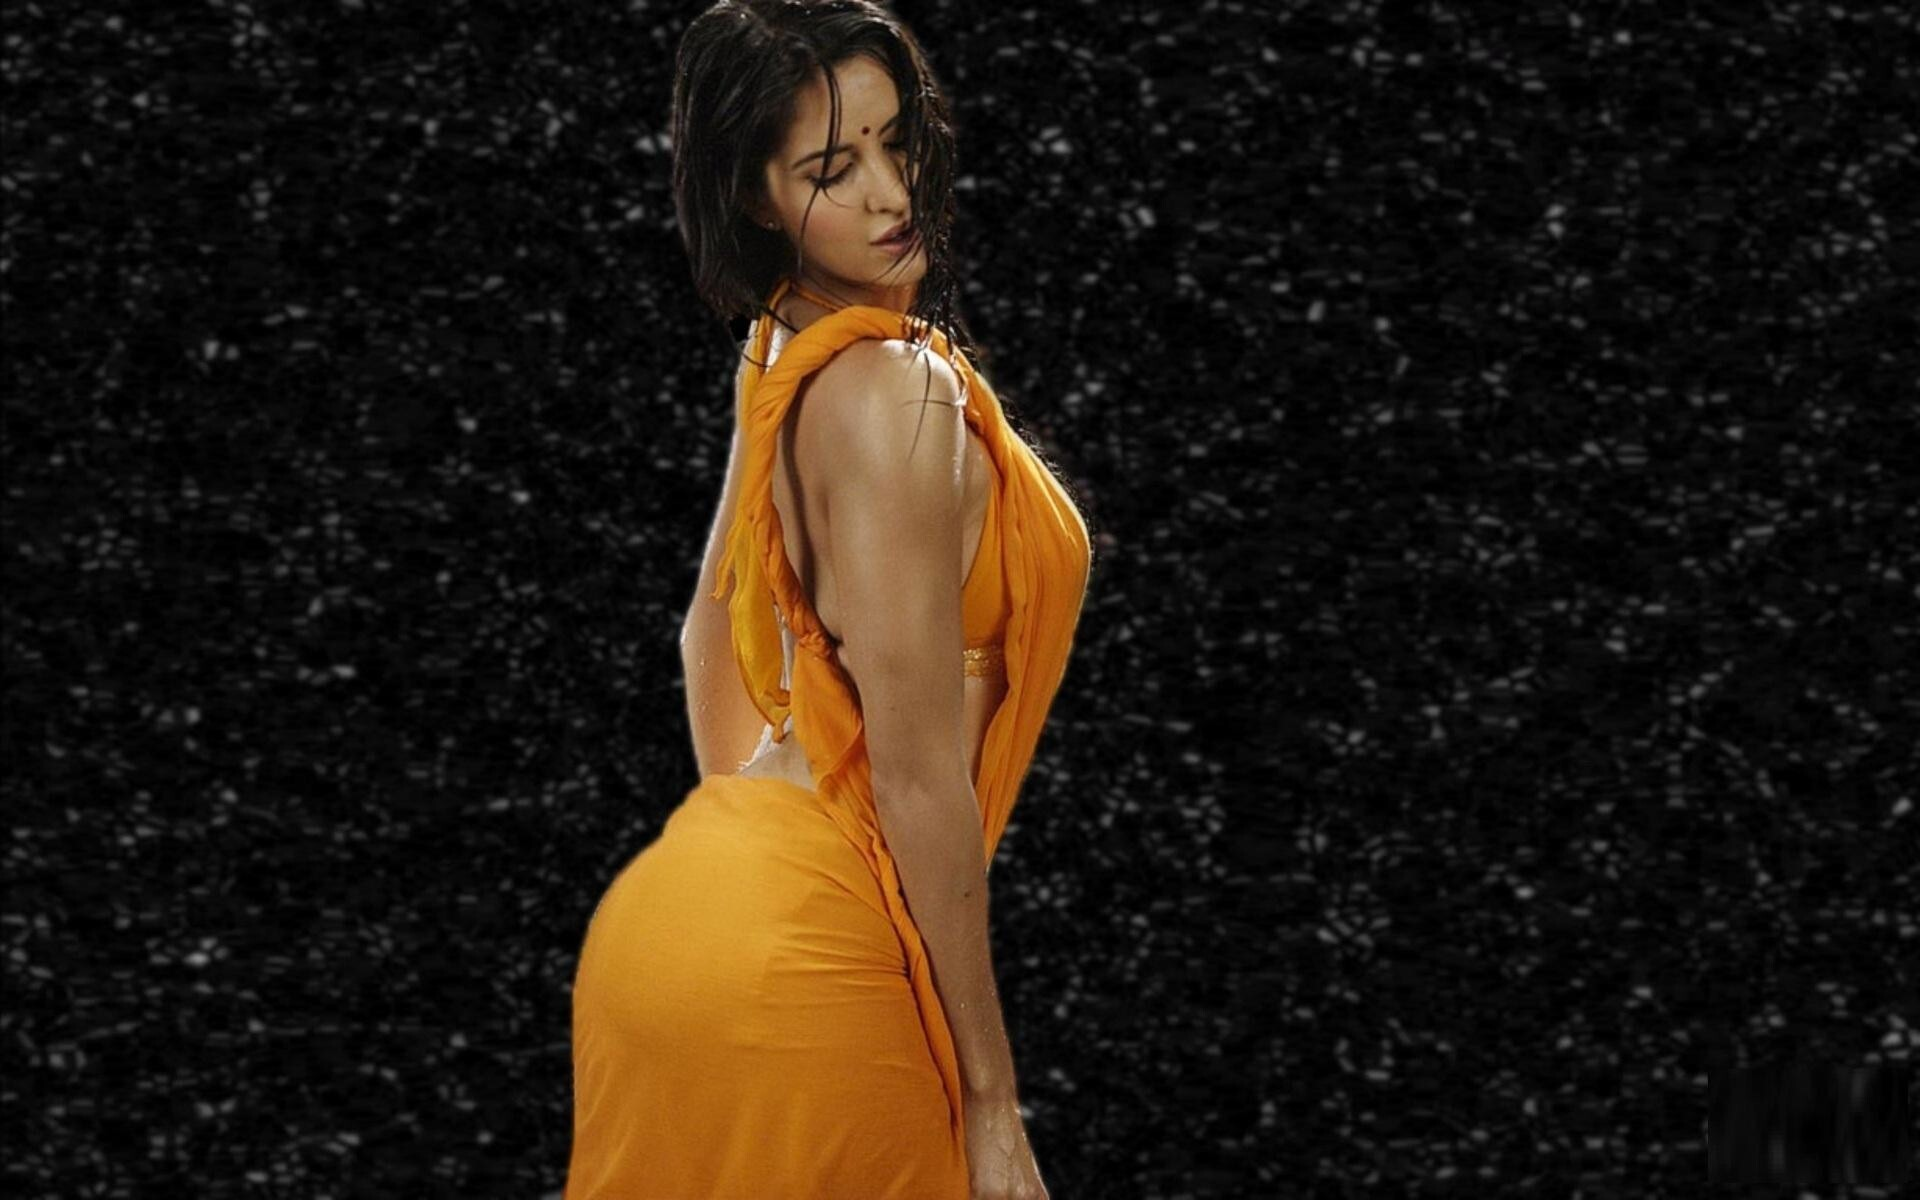 Katrina Saree Kaif Beautiful Girl Actor Face Wallpaper